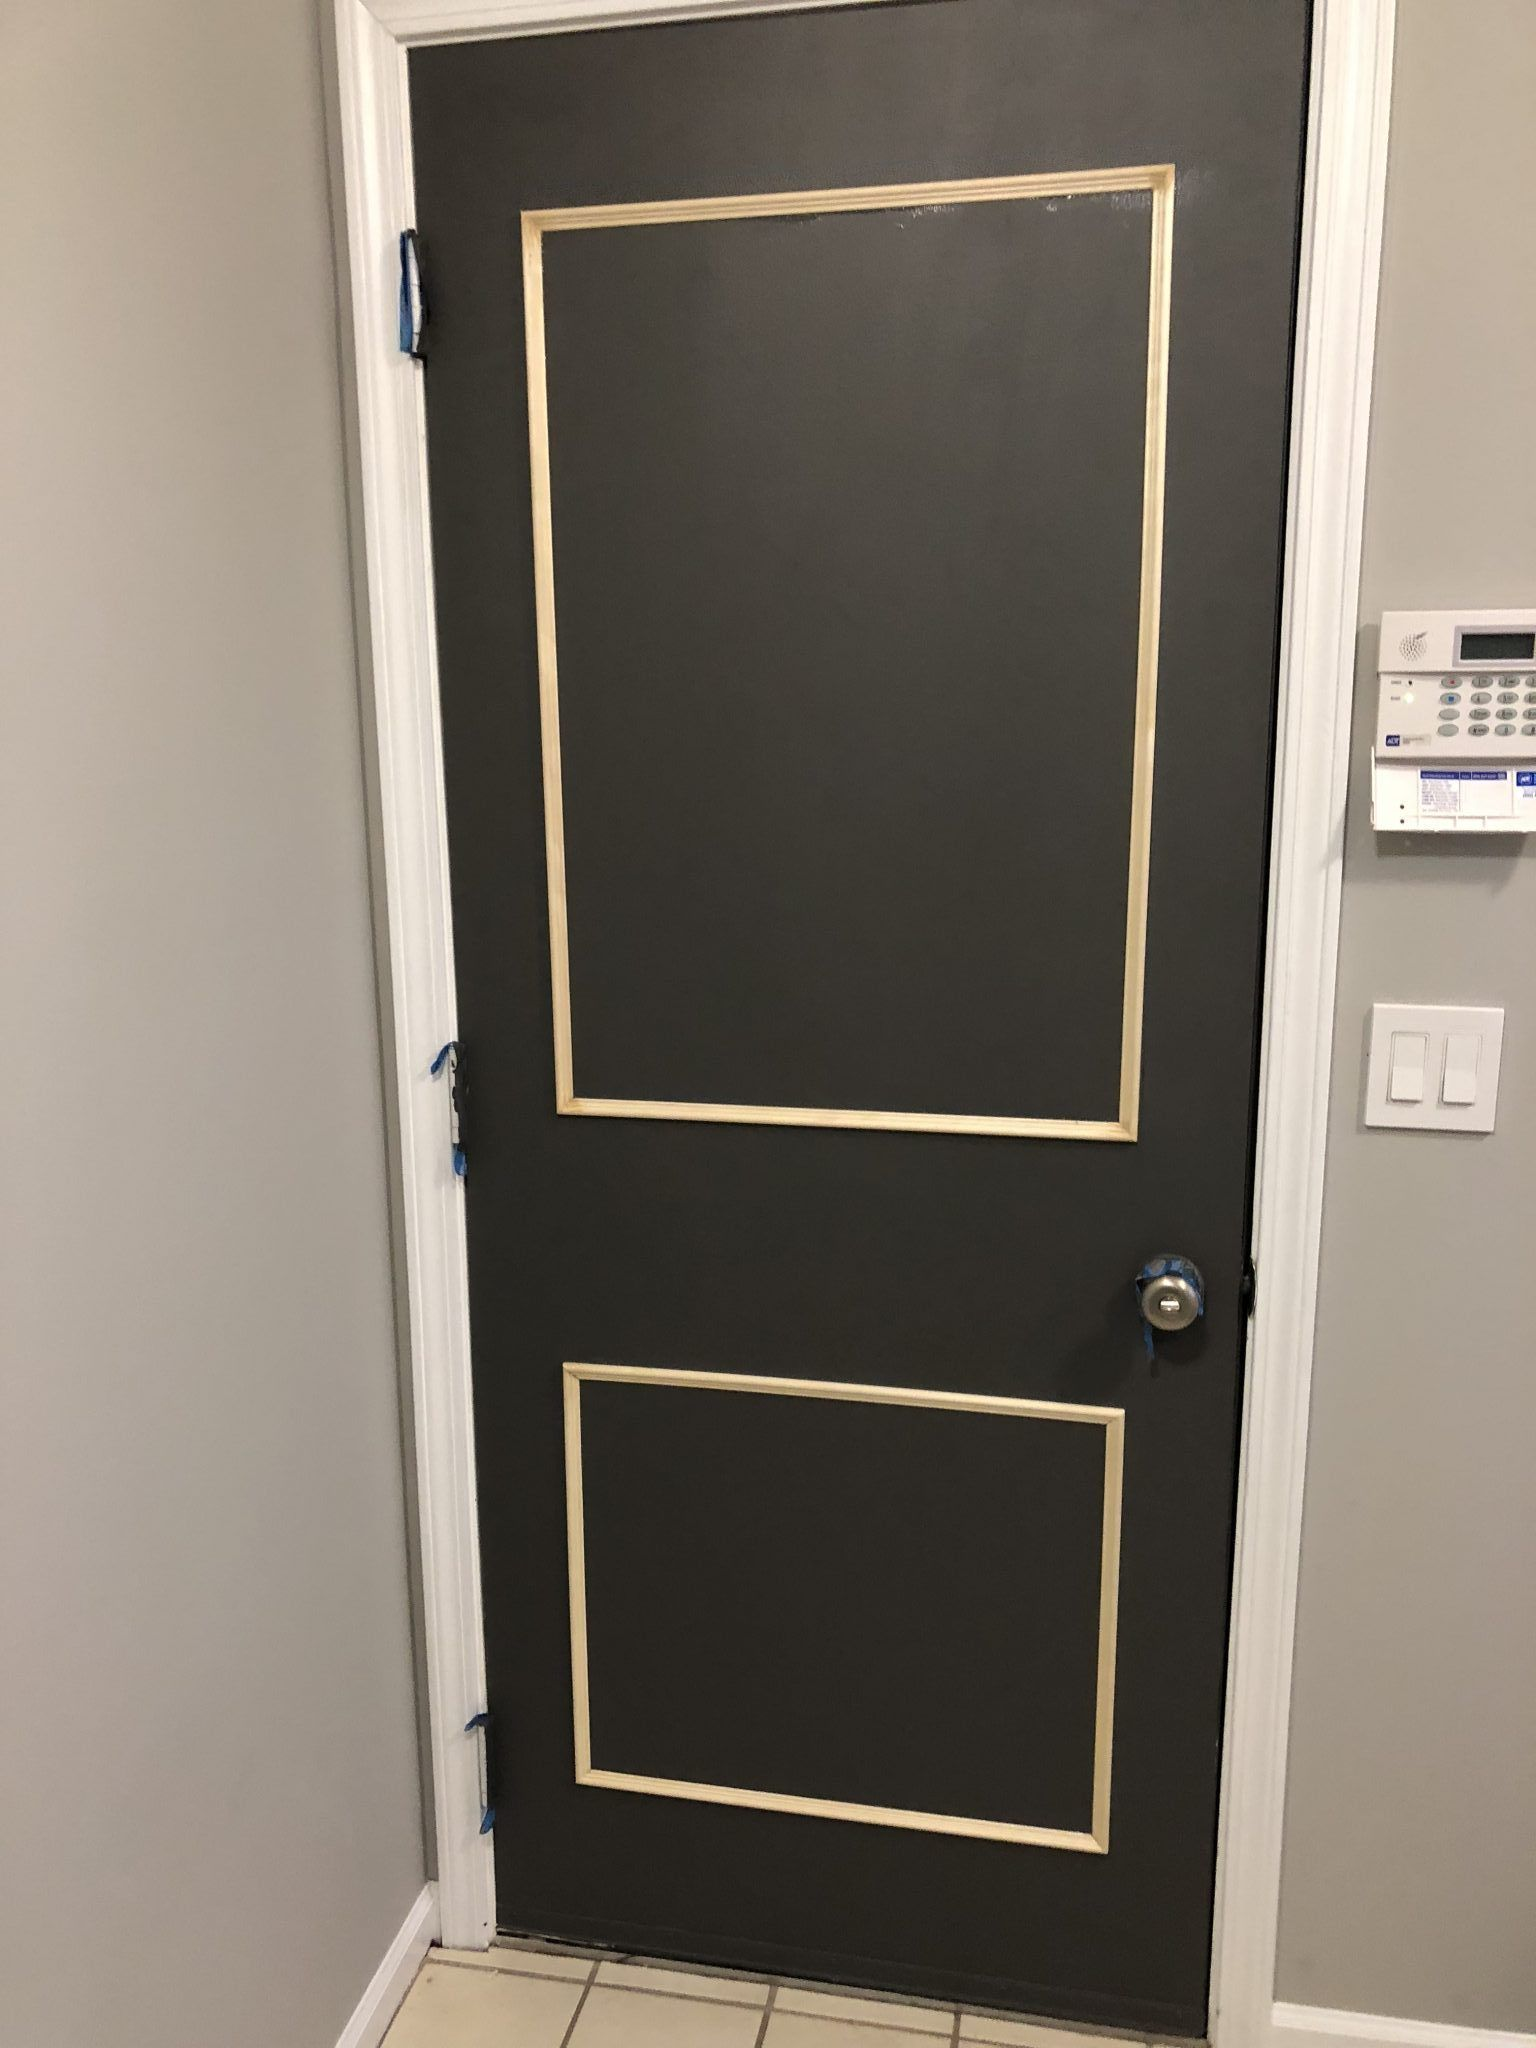 How to Easily Install Concealed Hinges on Cabinet Doors ...